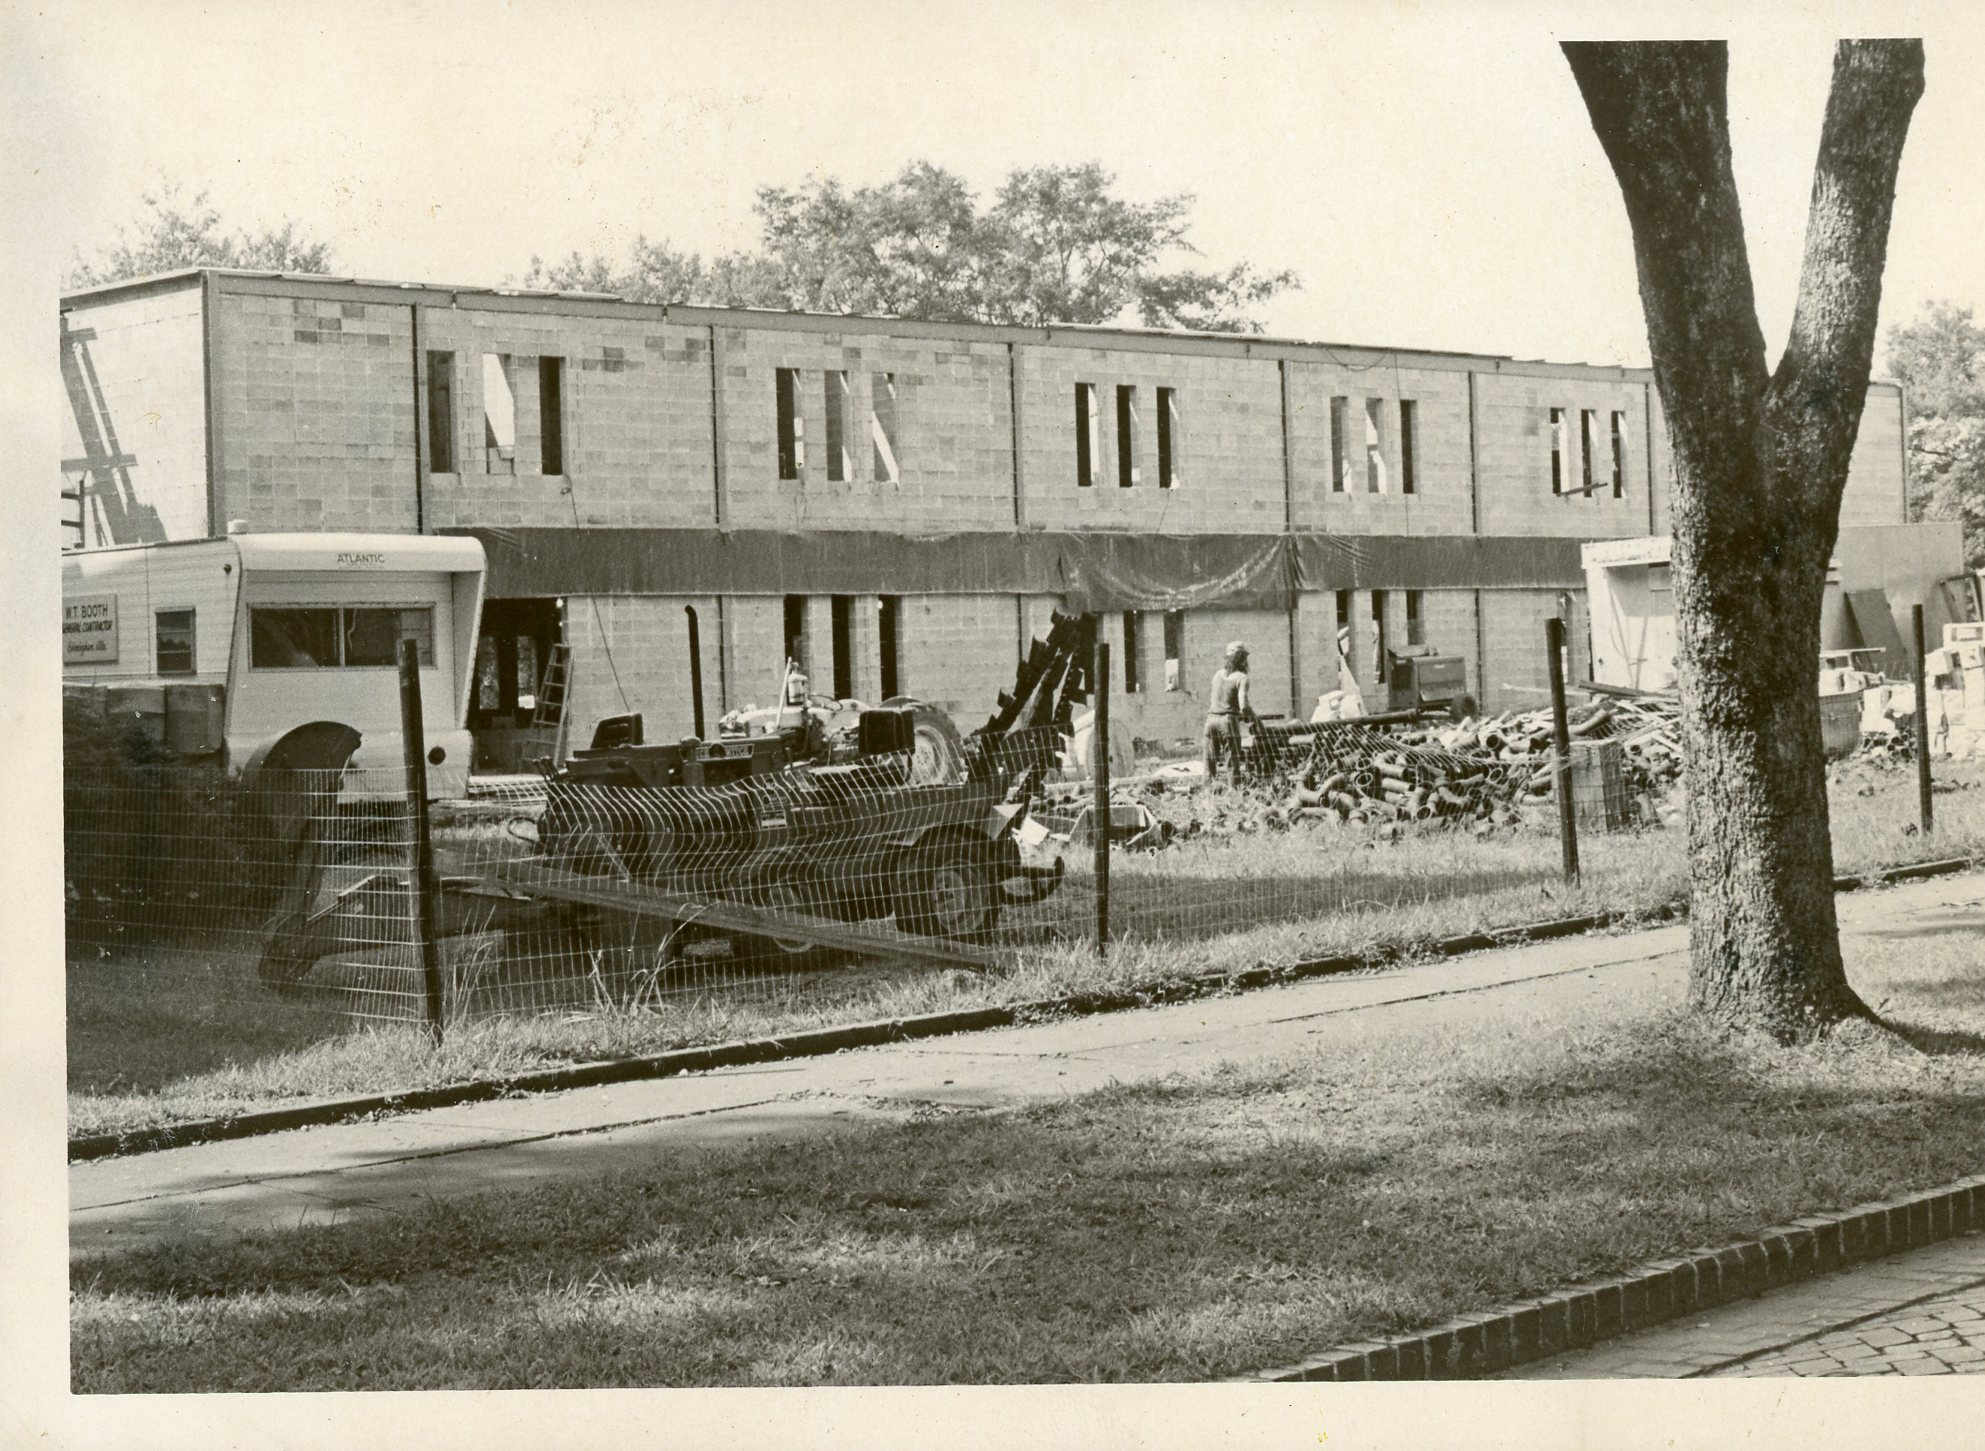 This image features Morgan Hall while it was under construction.